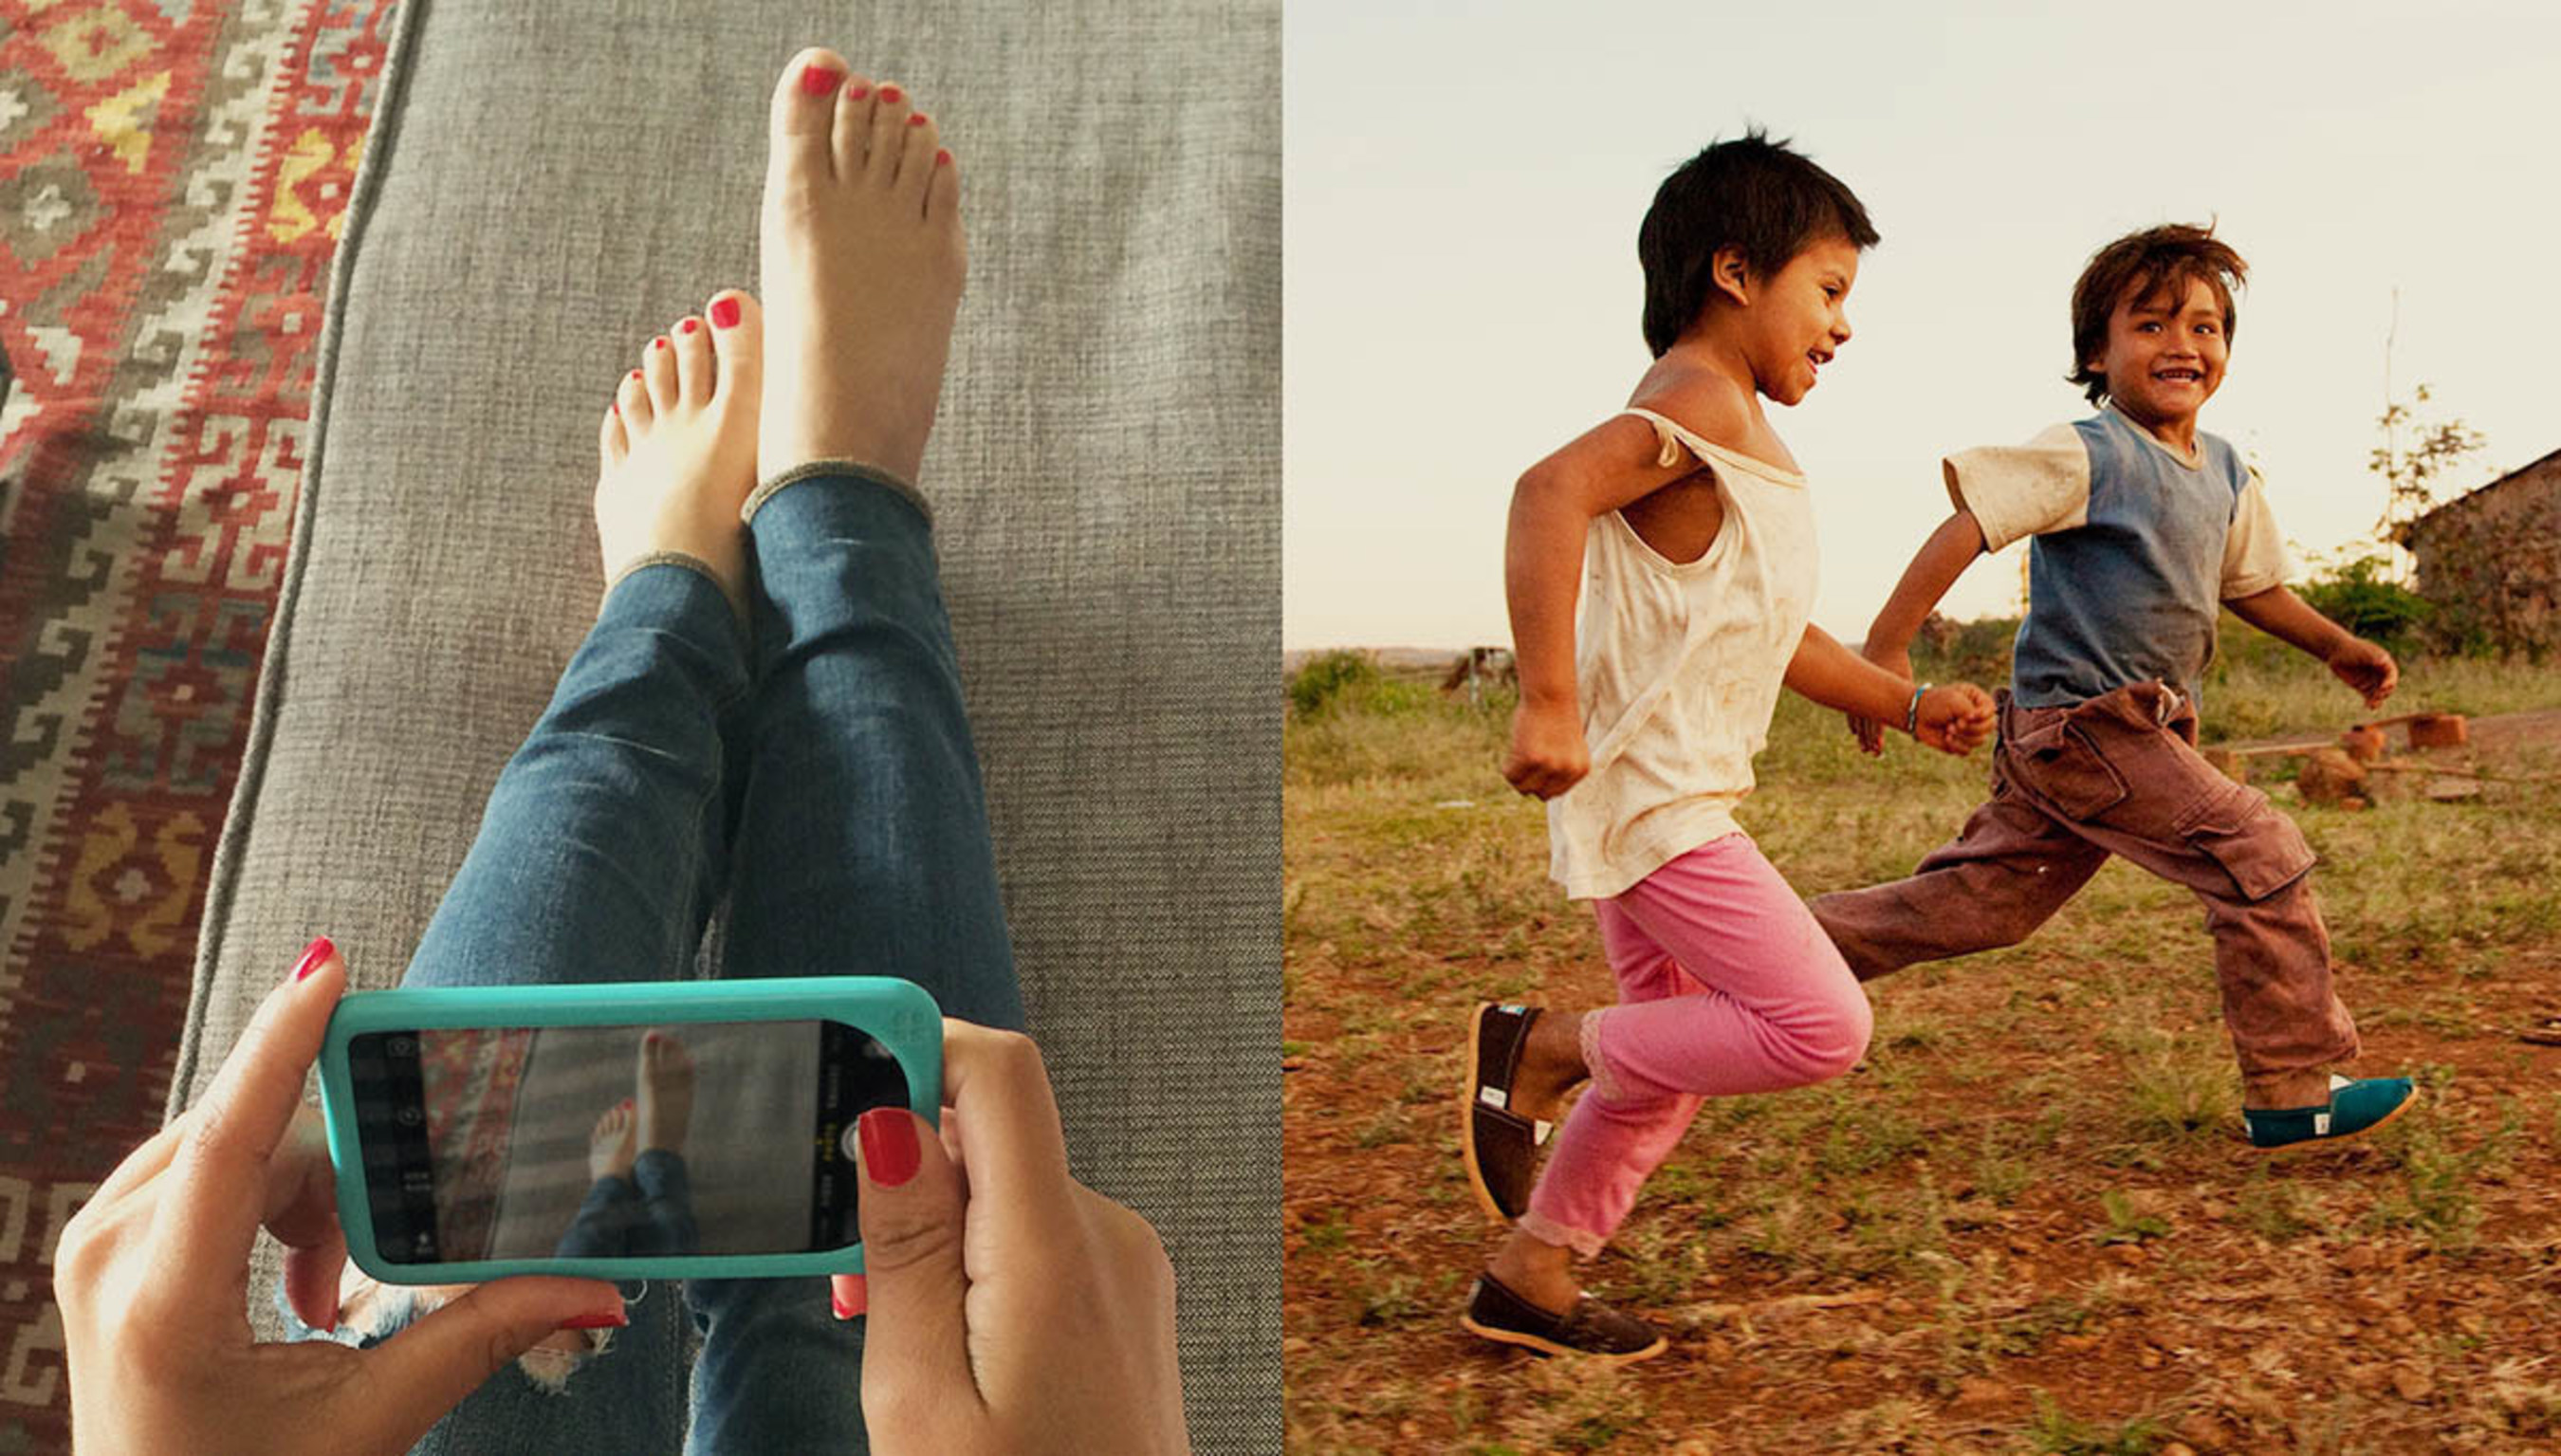 TOMS Launches One Day Without Shoes Campaign